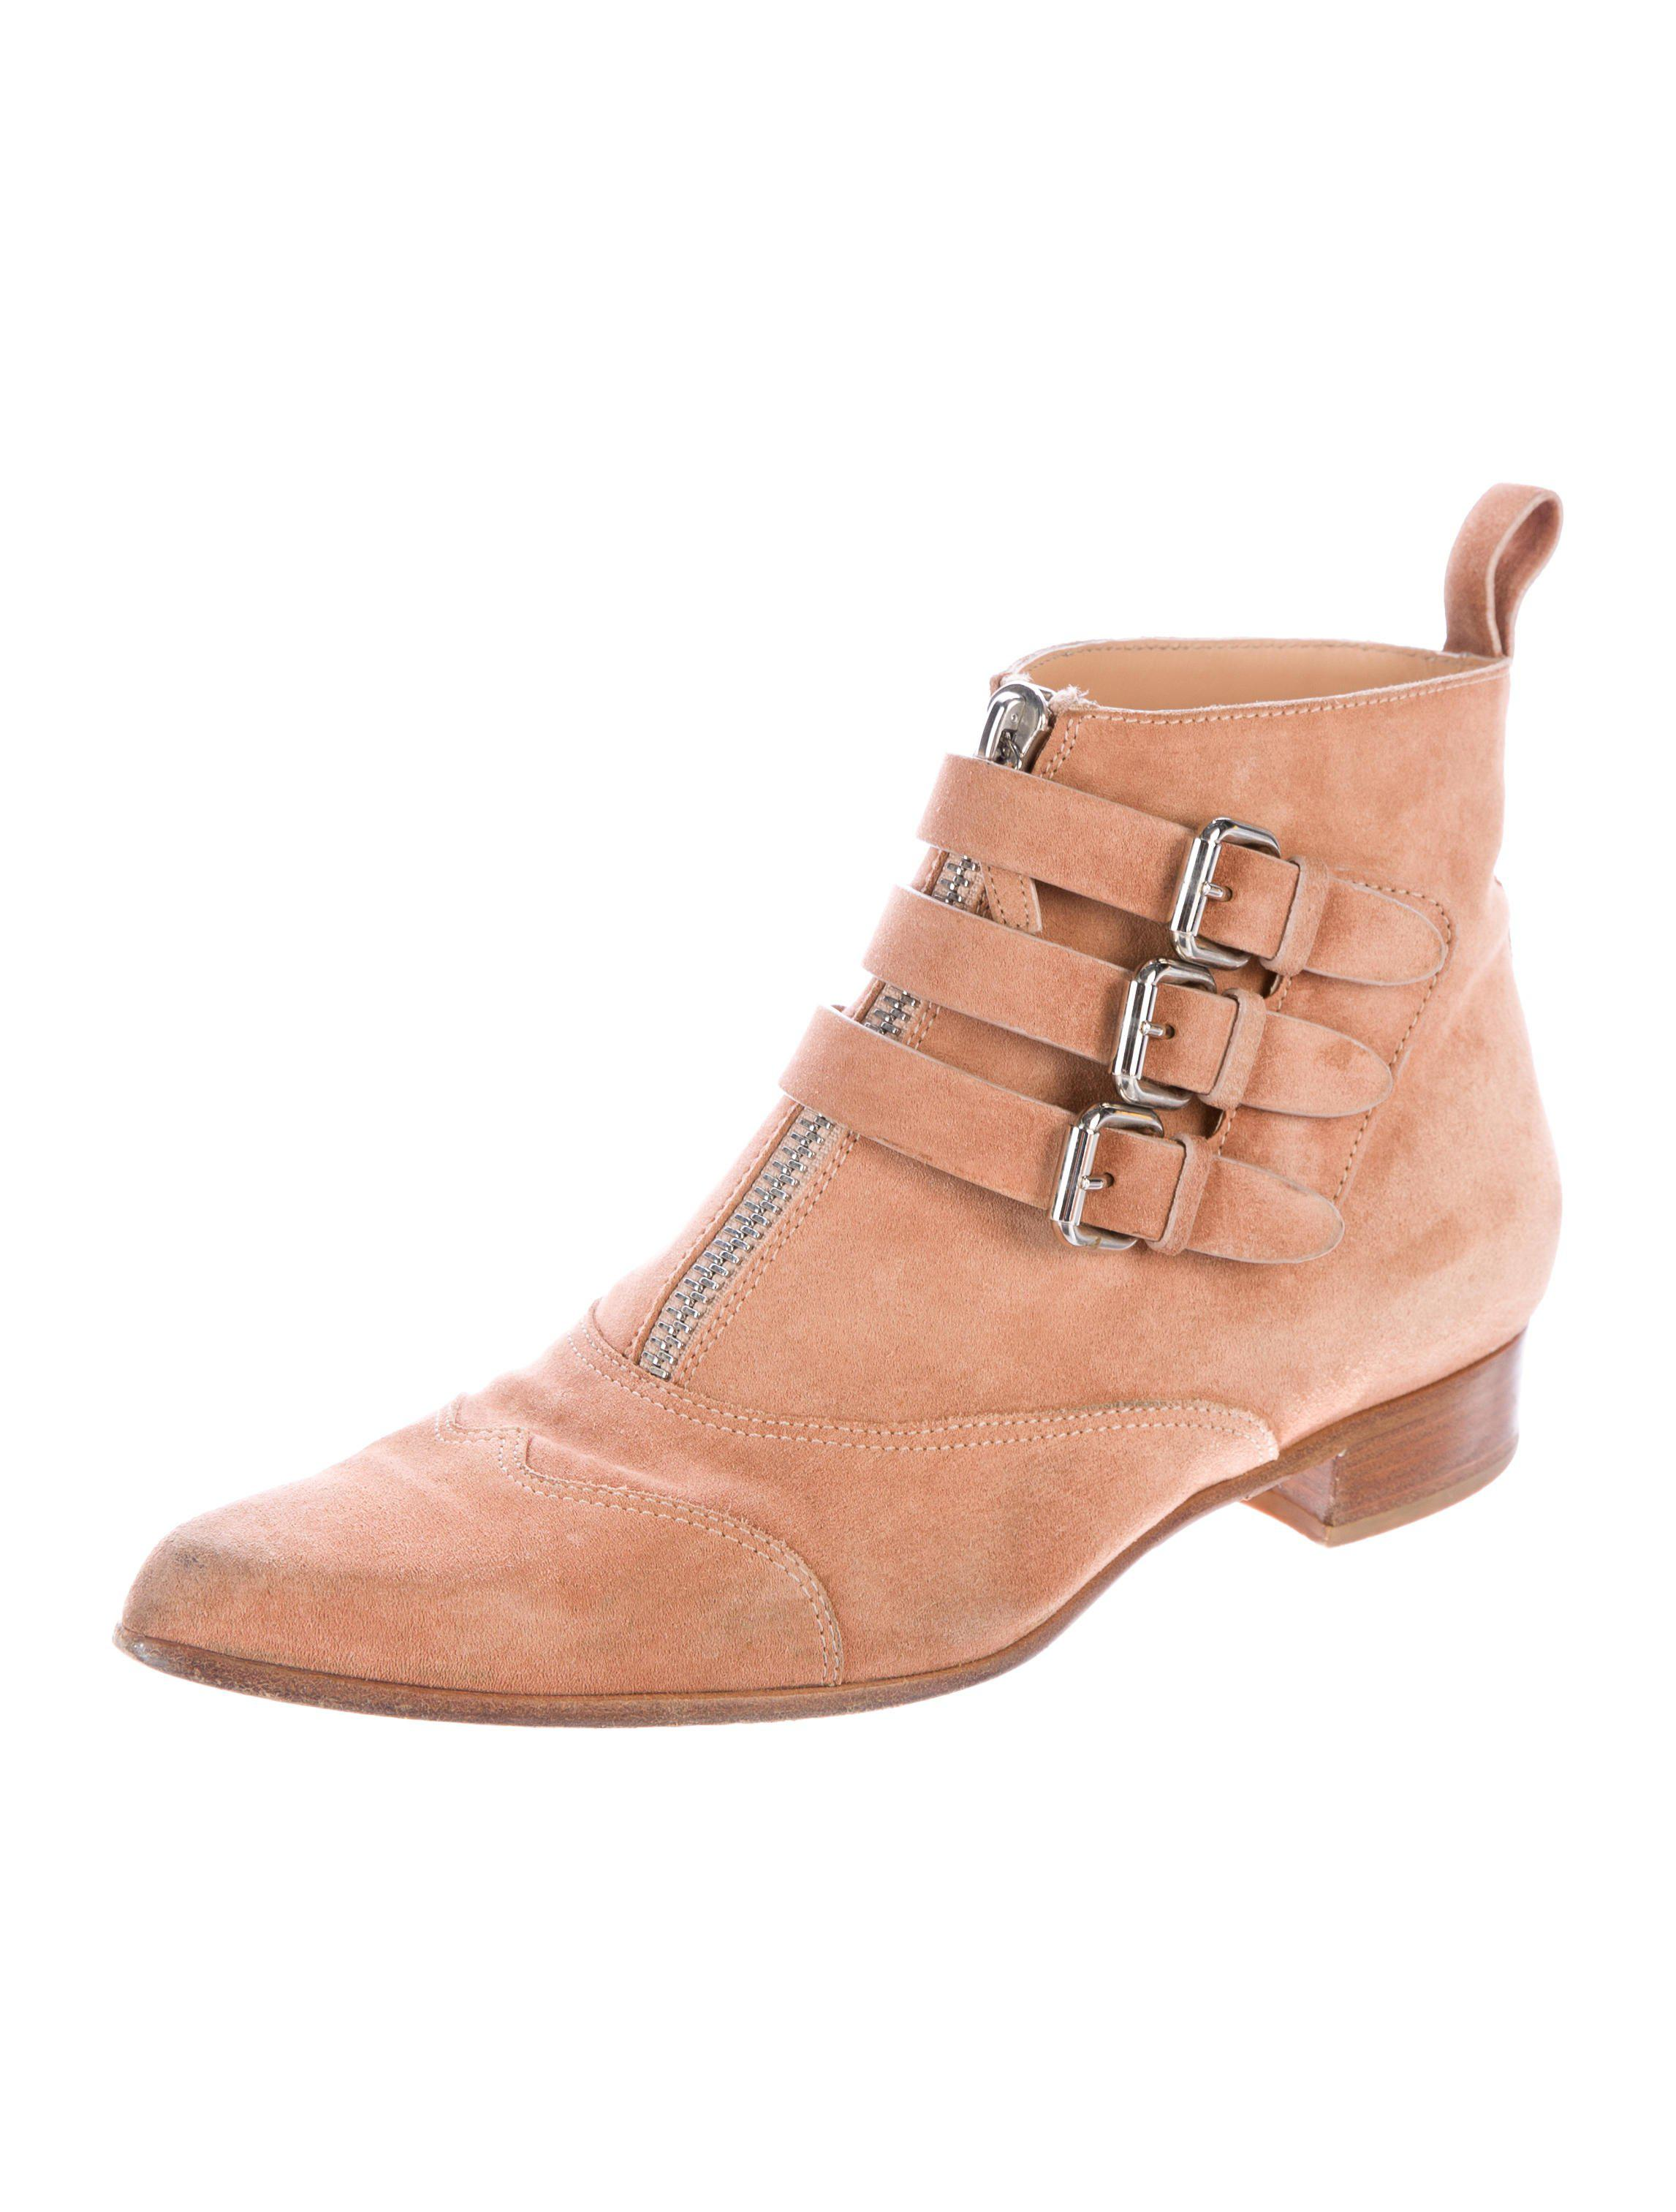 Tabitha Simmons Suede Buckle-Accented Ankle Boots for sale cheap real For sale online sale view sJnOBsYX